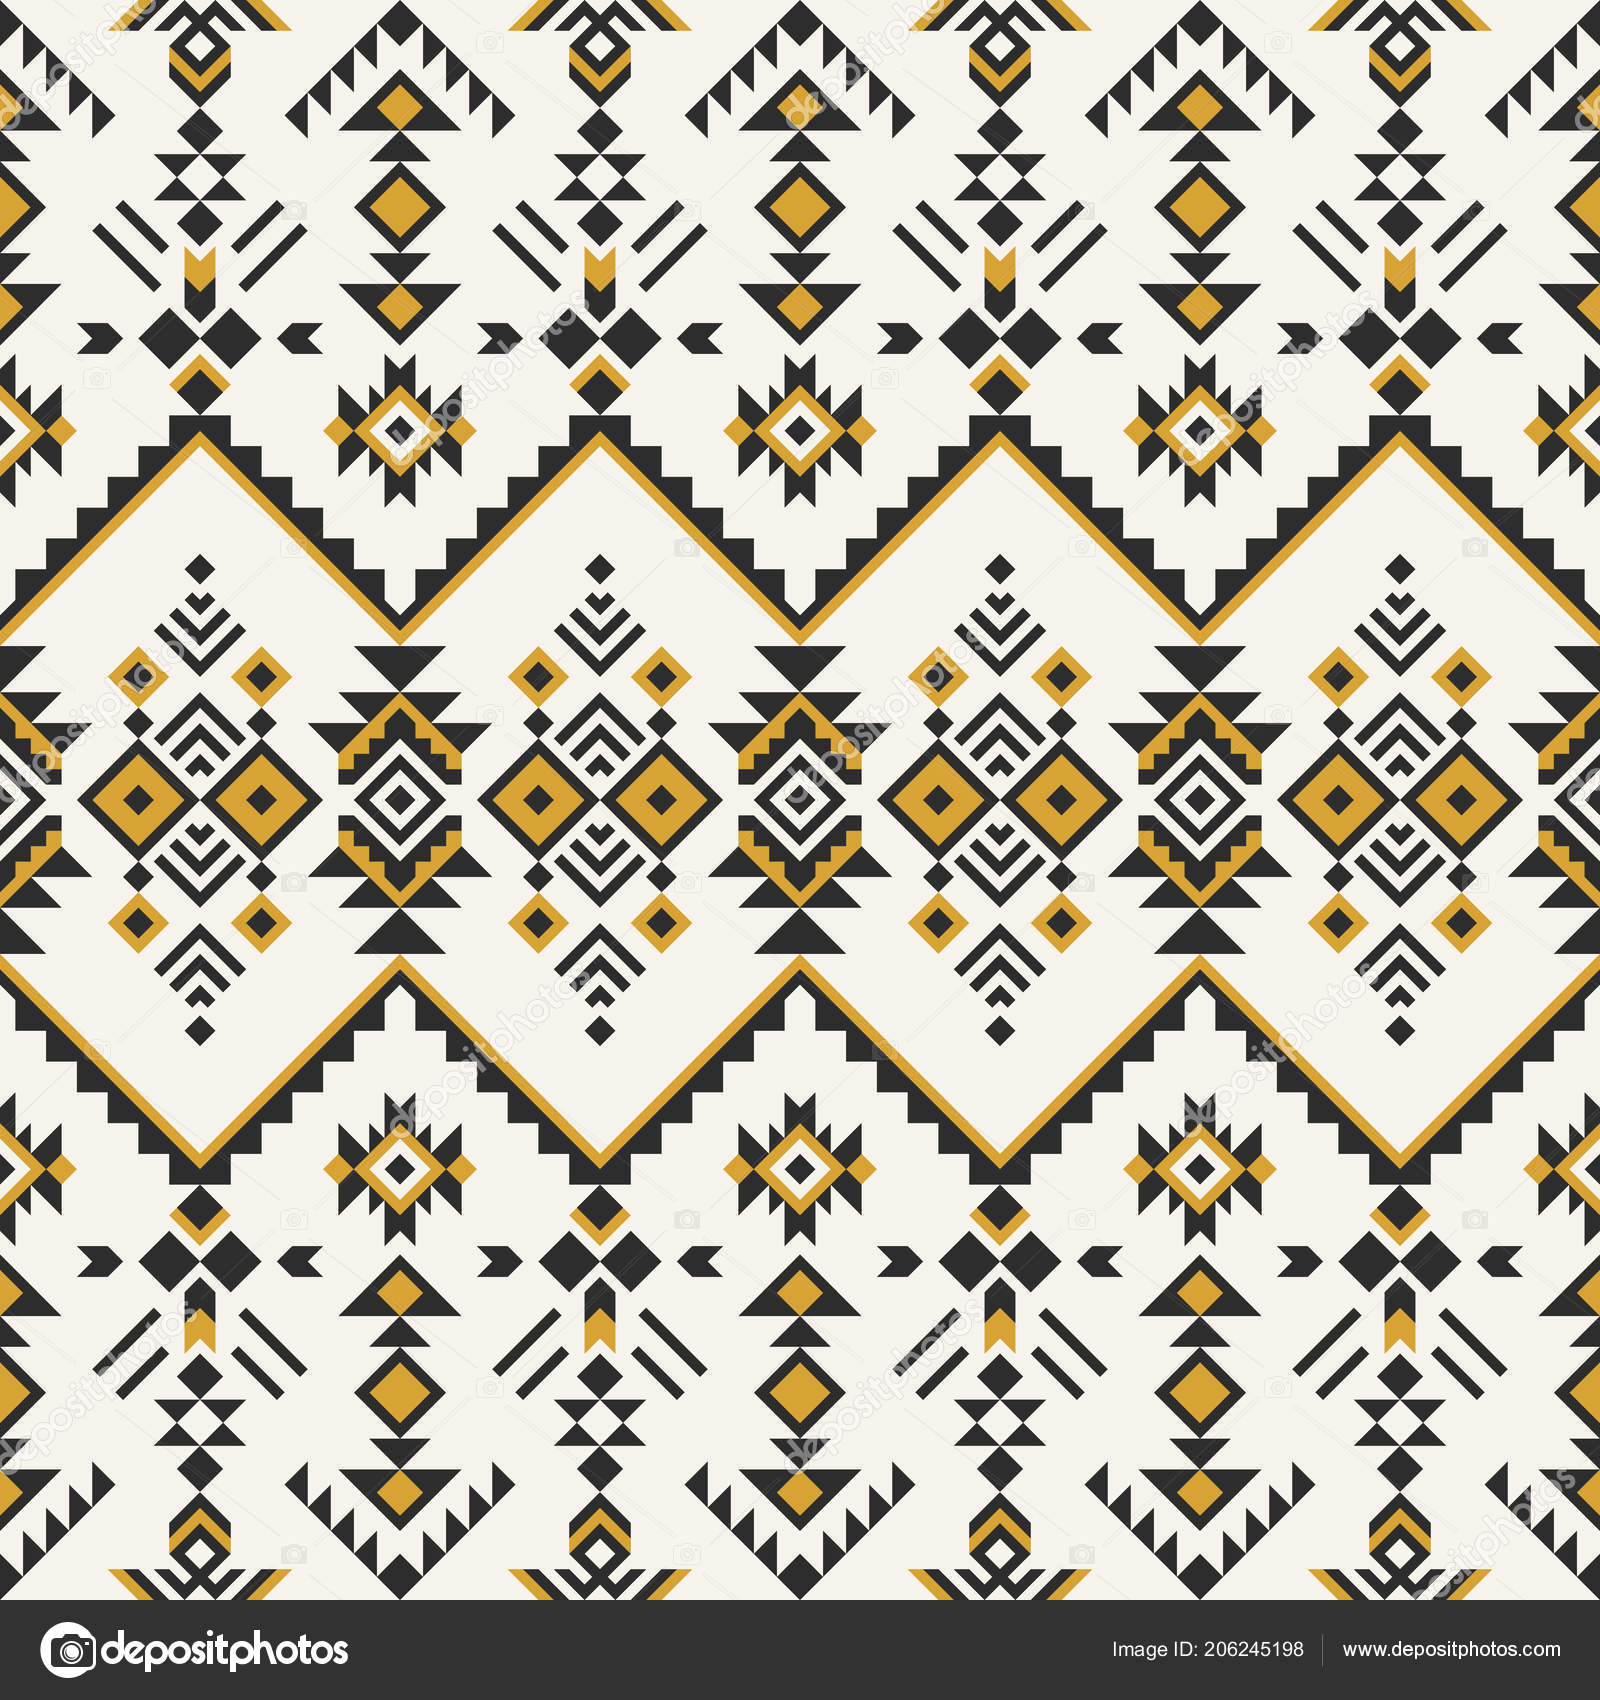 It's just an image of Native American Designs Printable throughout traditional